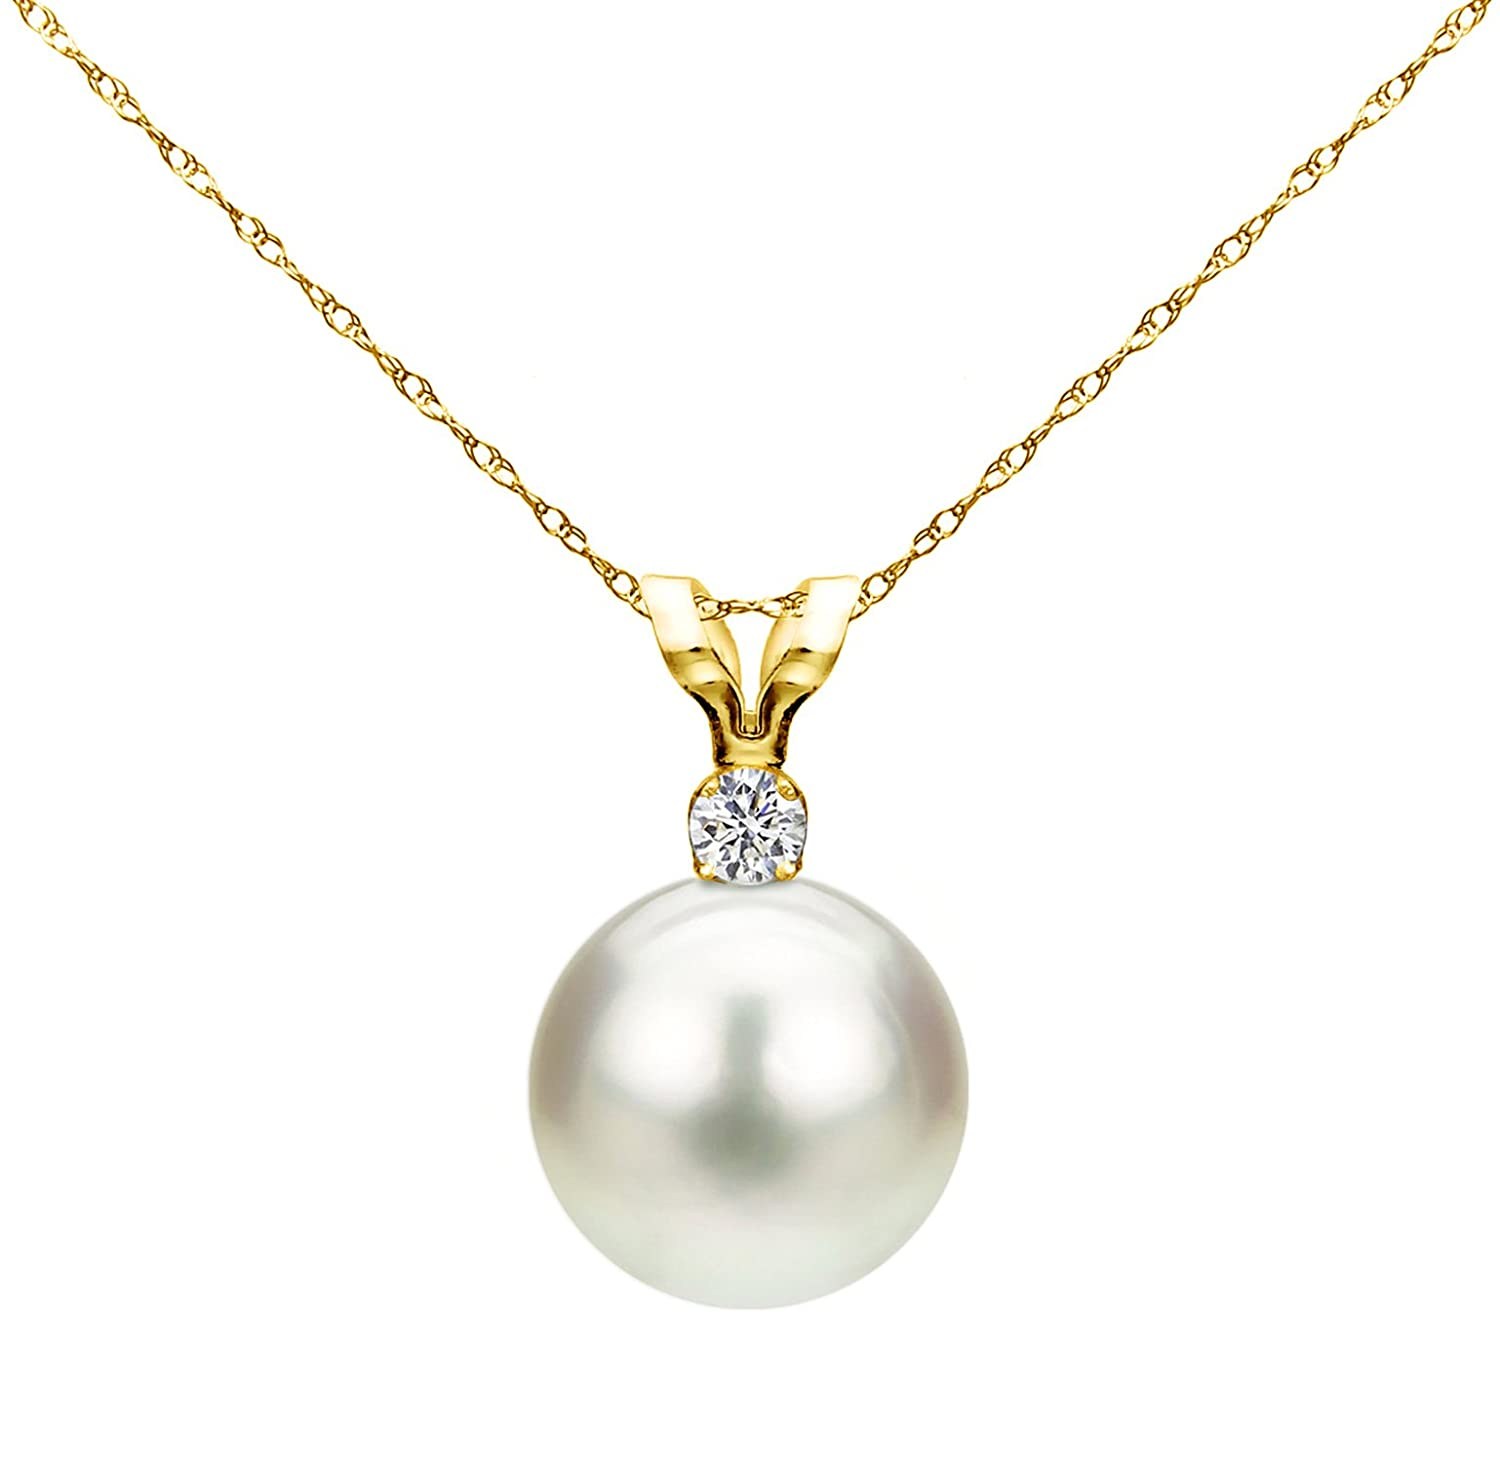 14K Gold Chain Freshwater Cultured Pearl Pendant Necklace Diamond Jewelry for Women 7-7.5mm 1/20CTTW